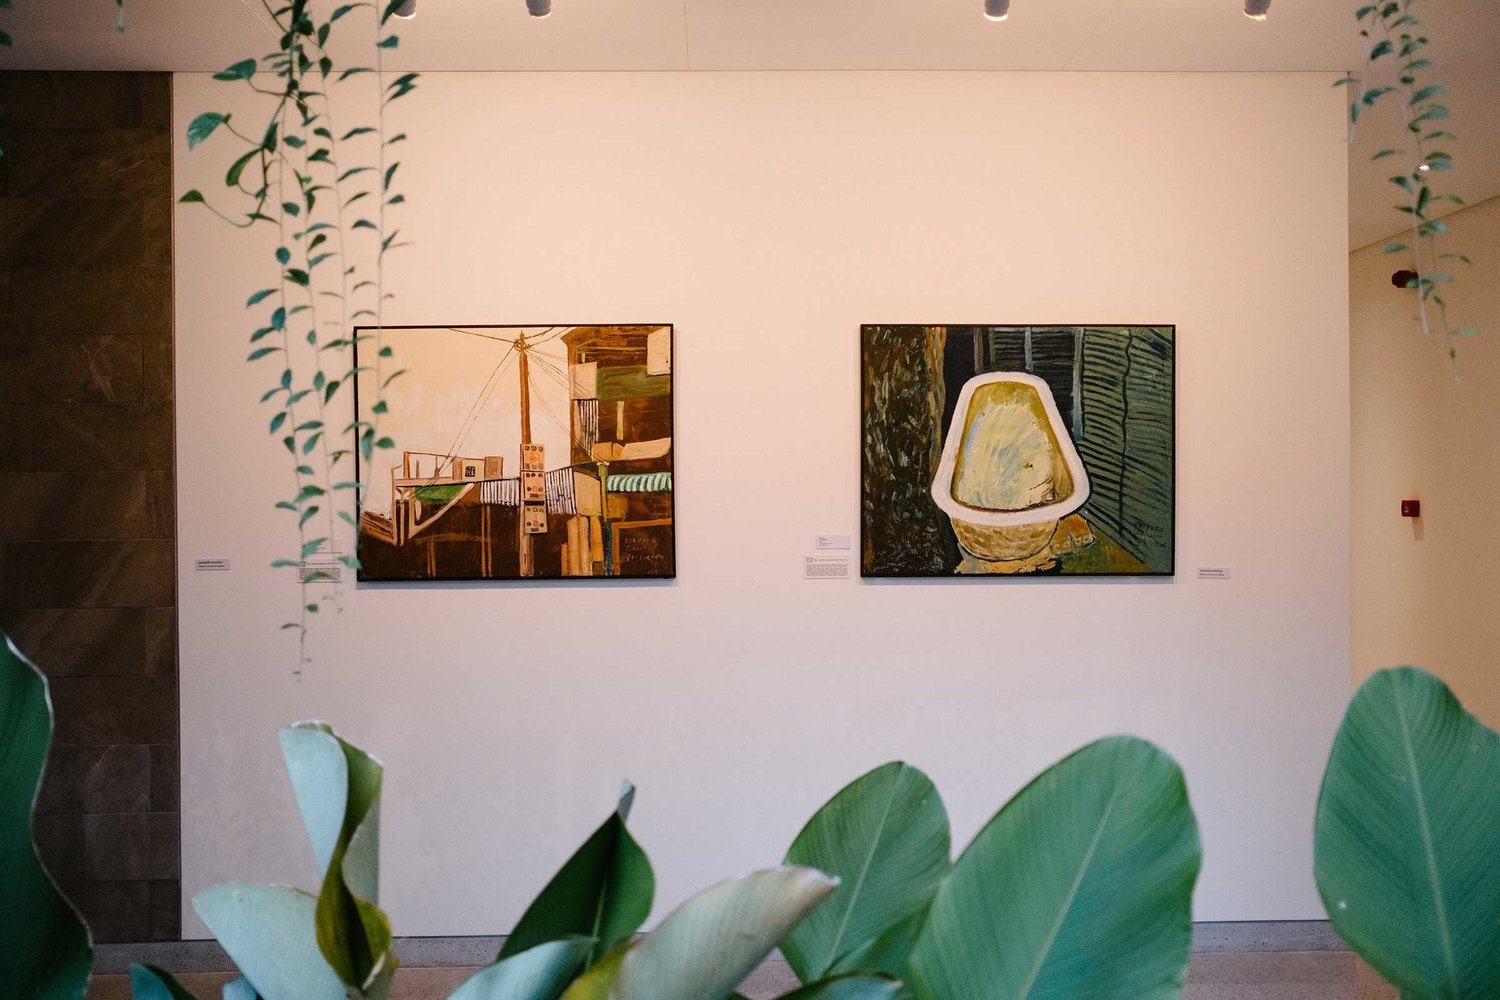 Installation view of Ti Prasap at Treeline Gallery